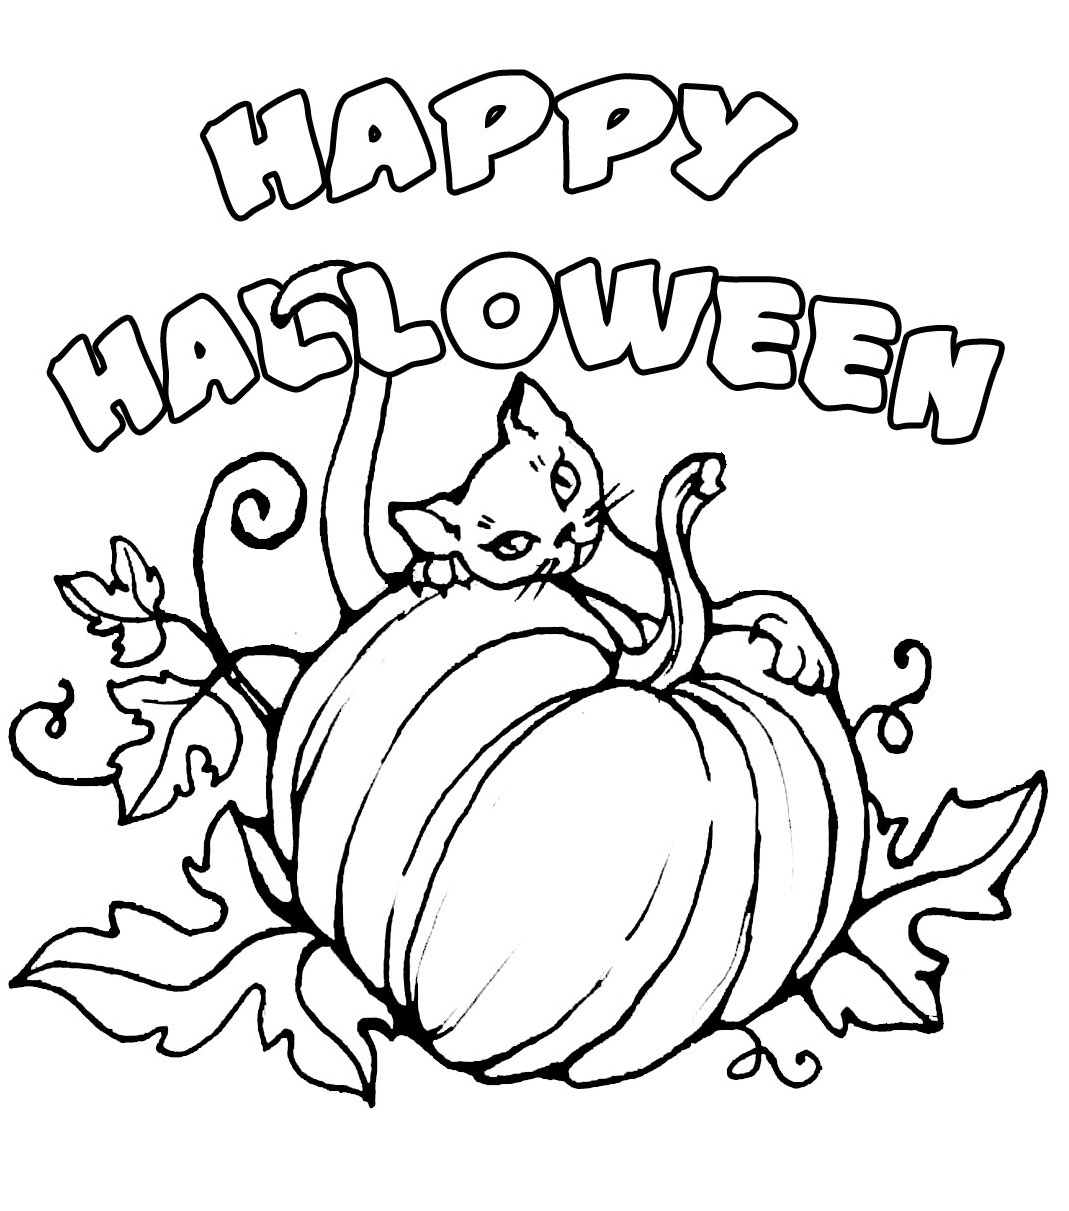 Halloween Coloring Pages: Best Halloween Coloring Pages 2017